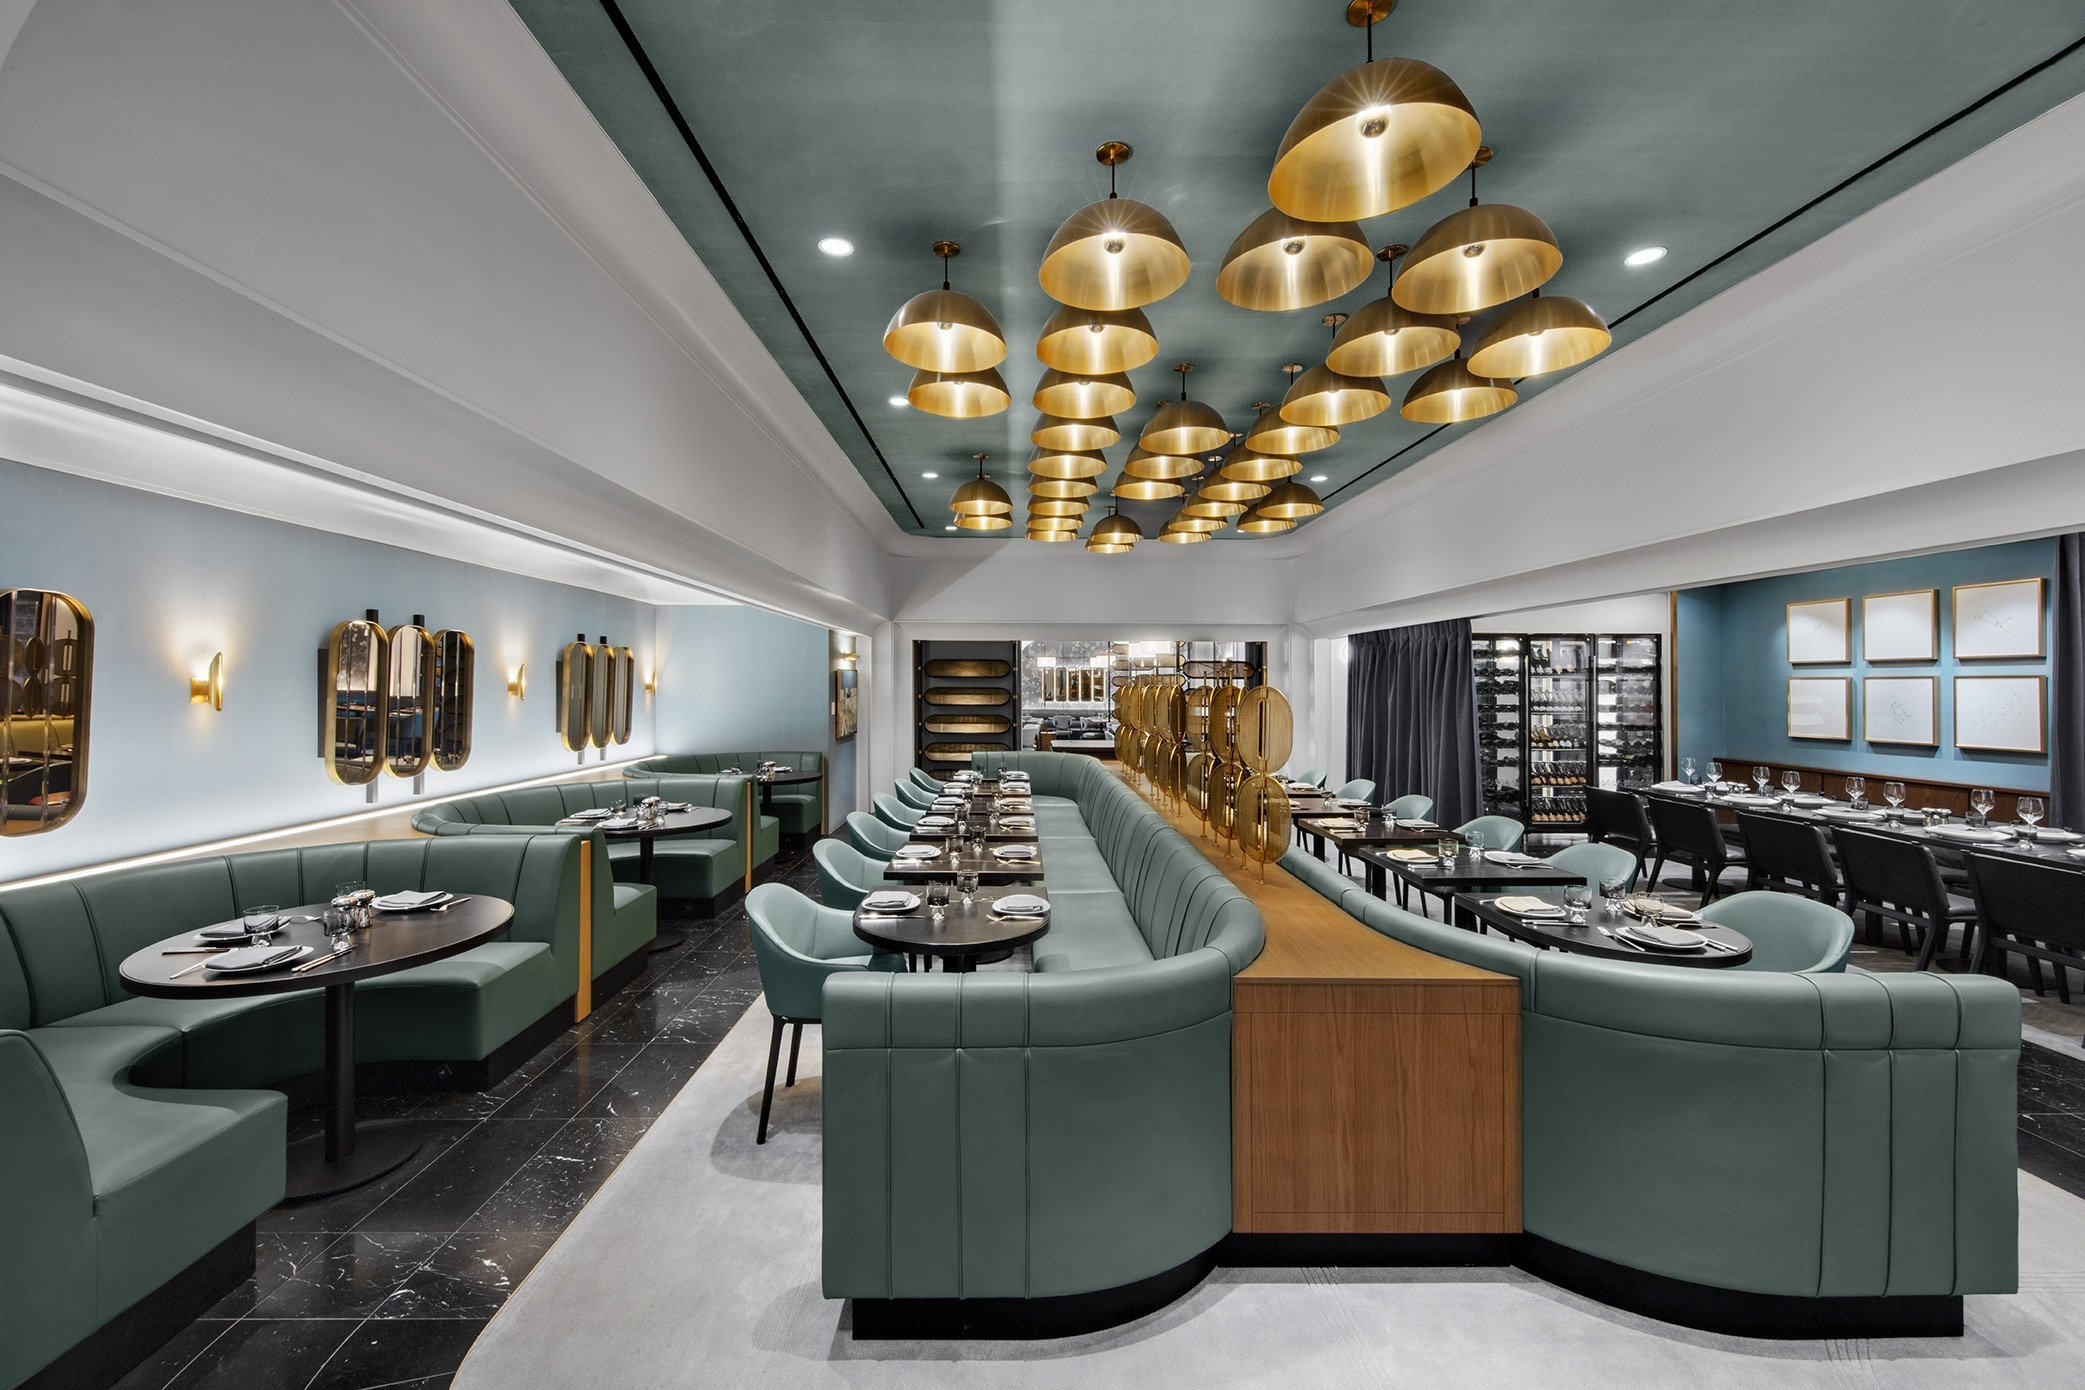 The Zodiac Room Neiman Marcus Hudson Yards New York - Leather by Keleen